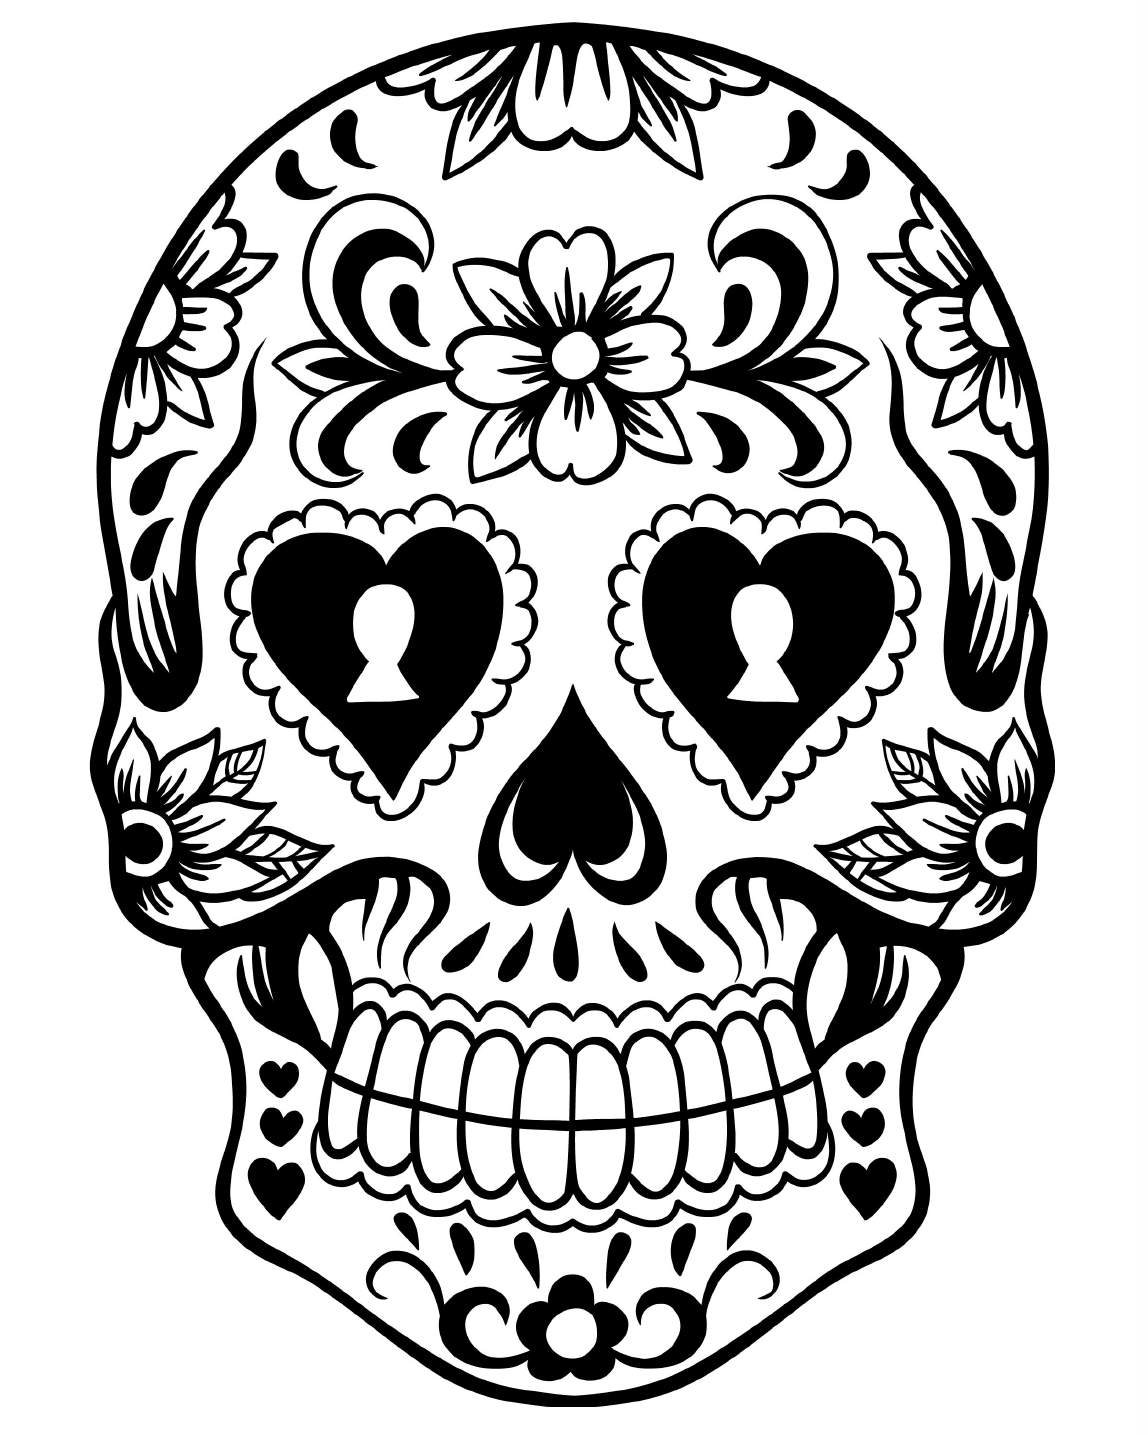 day of the dead coloring pages free free printable day of the dead coloring pages best coloring day of pages dead free the